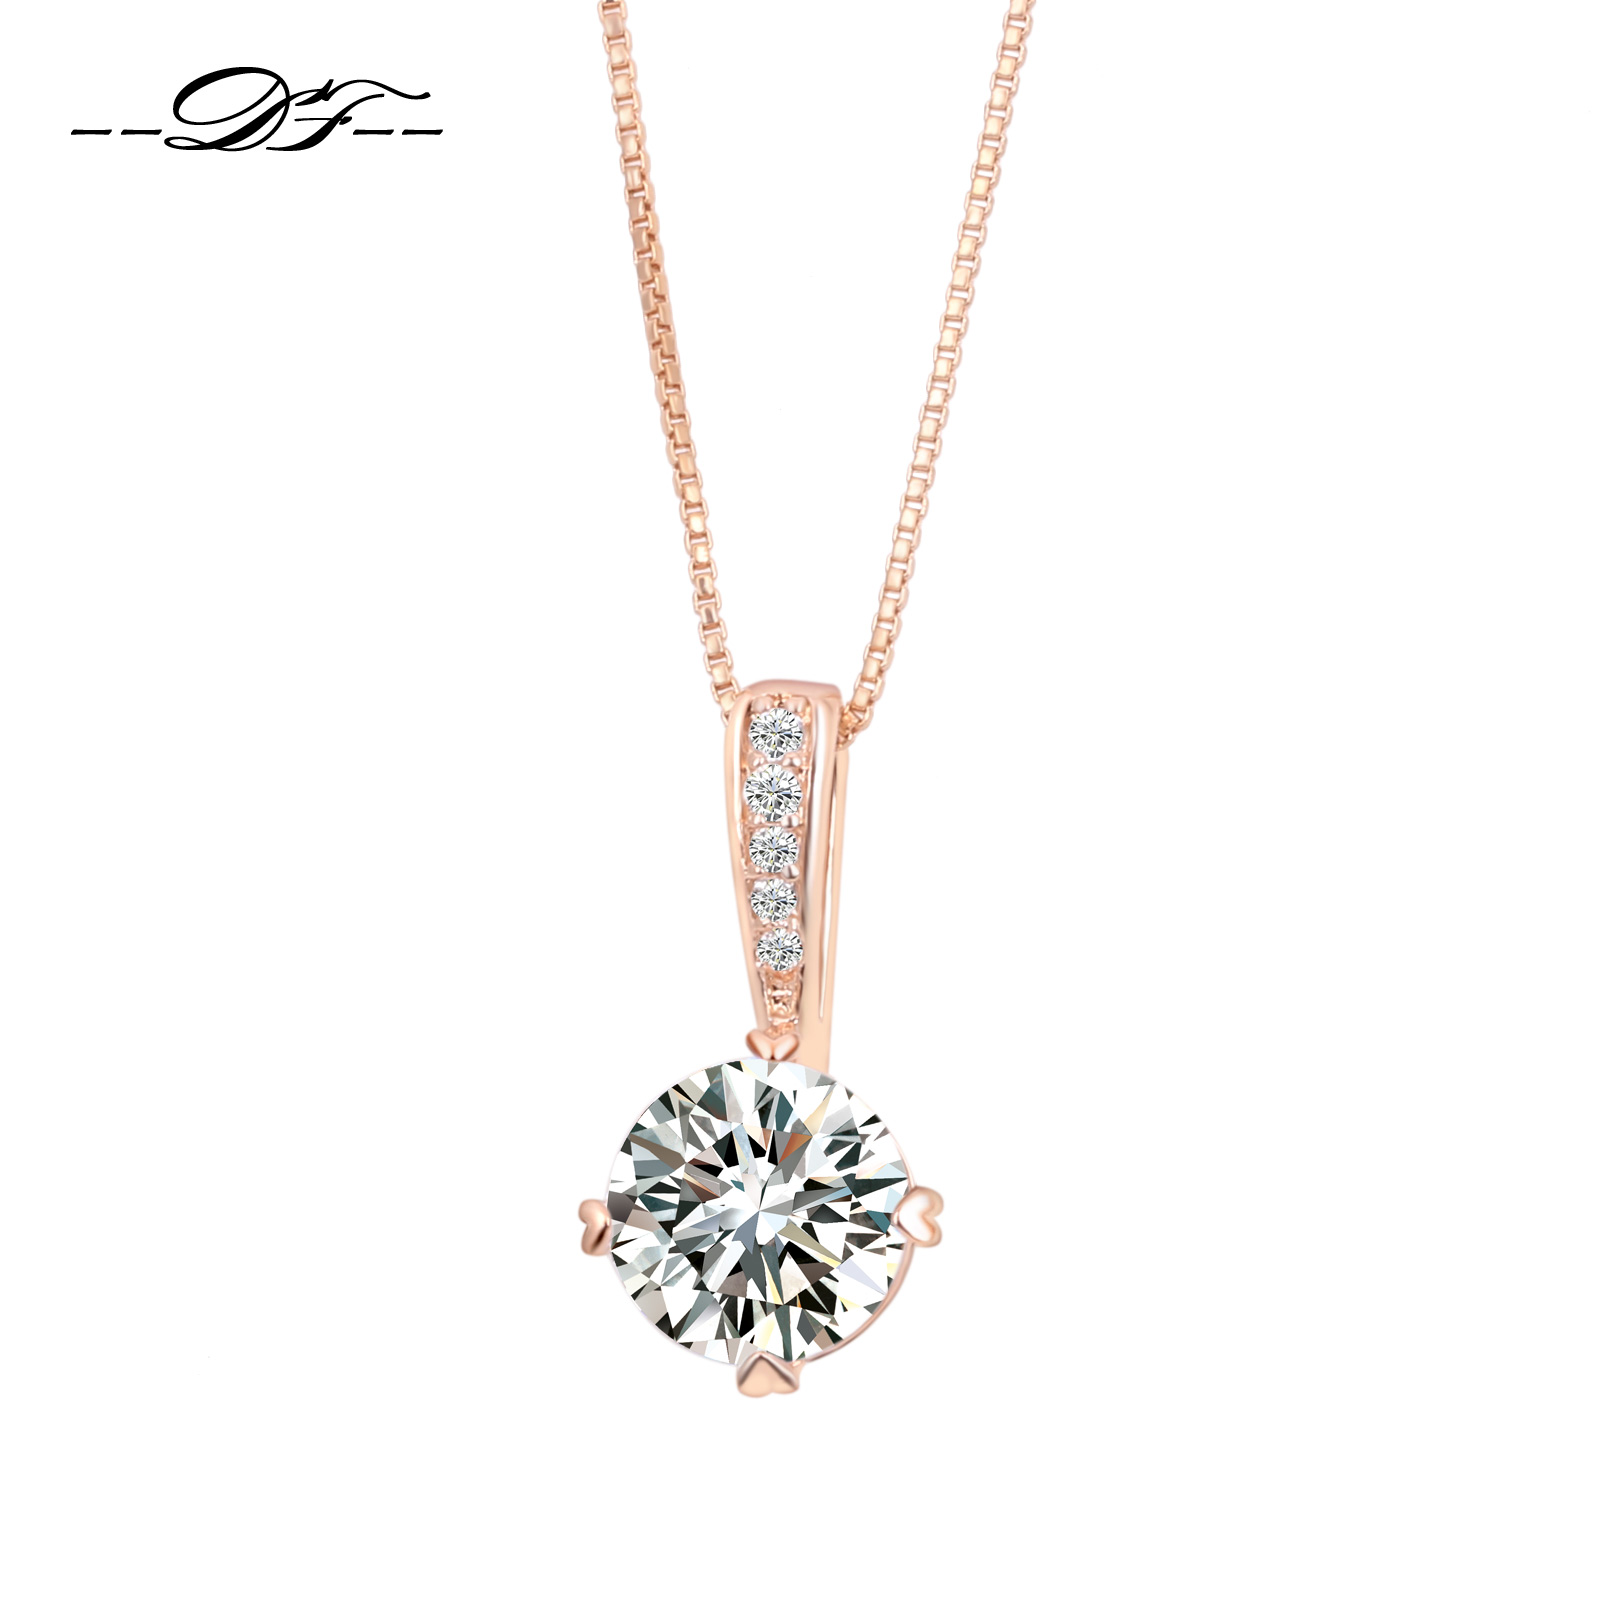 8a89047829b Double Fair OL Style Cubic Zirconia Chain Necklaces & Pendants Rose Gold  Color Fashion Crystal Wedding Jewelry For Women DFN426